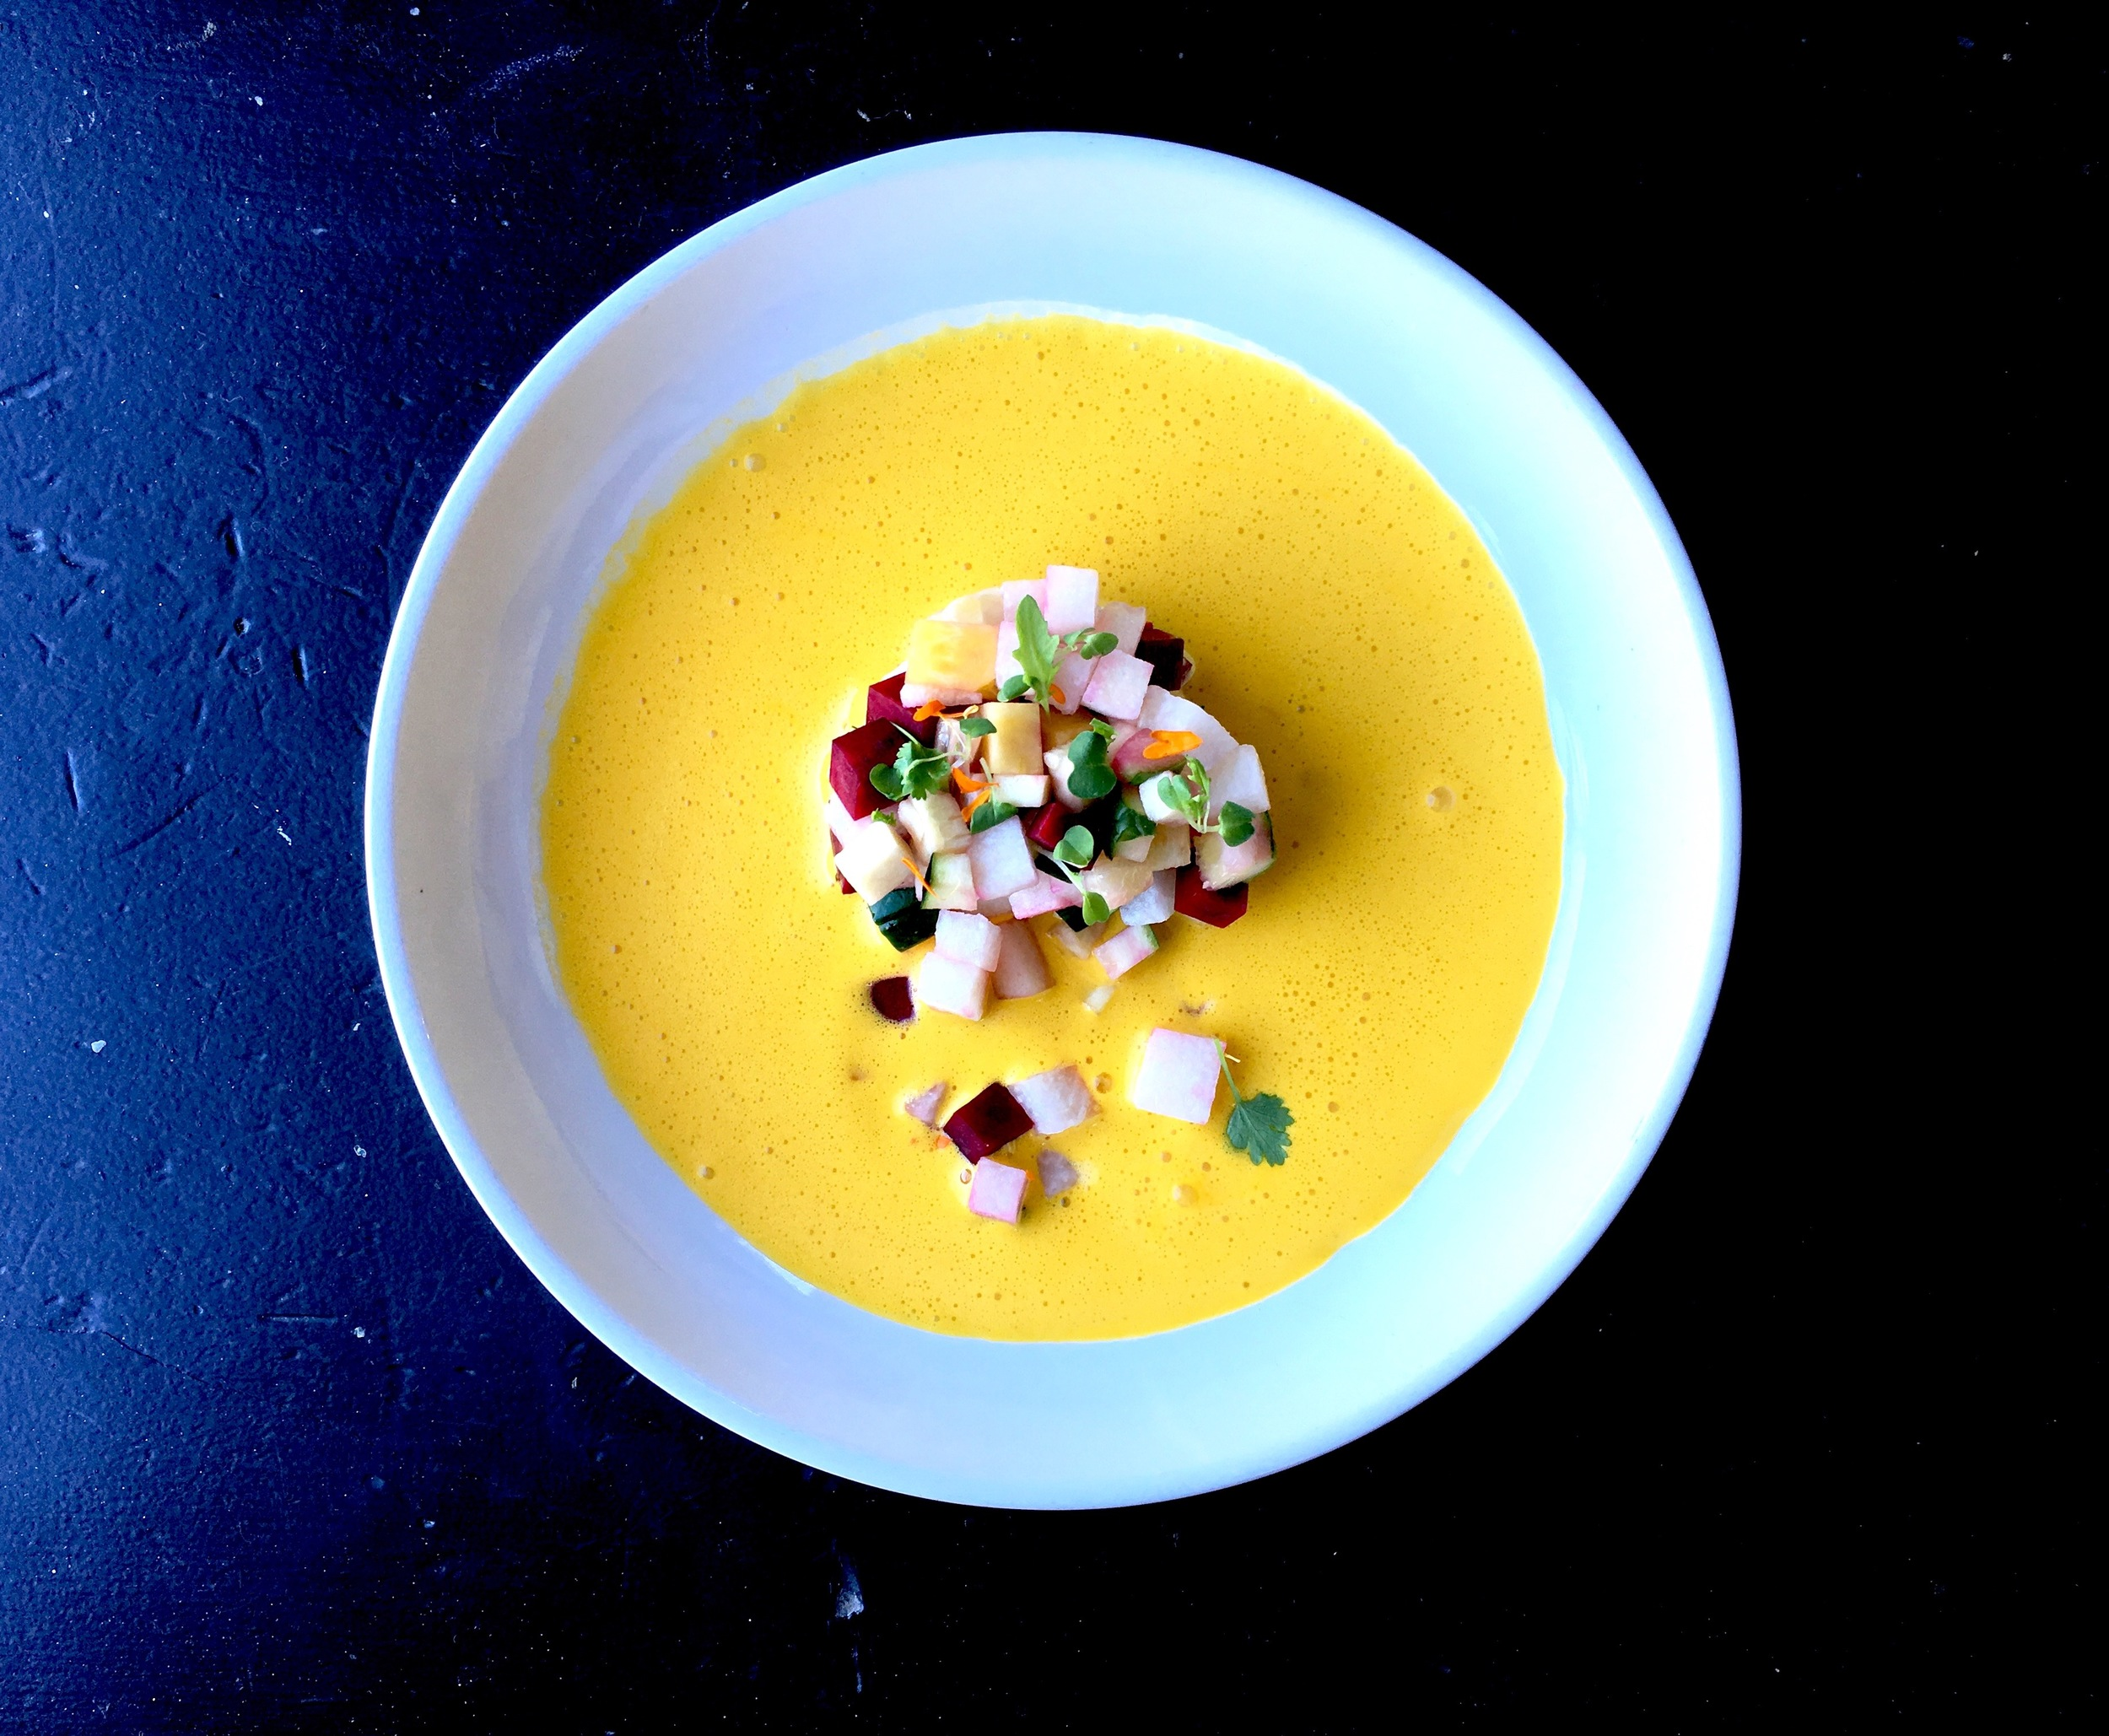 Carrot Soup // Carrot Juice /Almond shallot milk / Lemon vinaigrette / Chili oil. Throw in any leftover veggies into the soup! Great way to clear out your fridge!